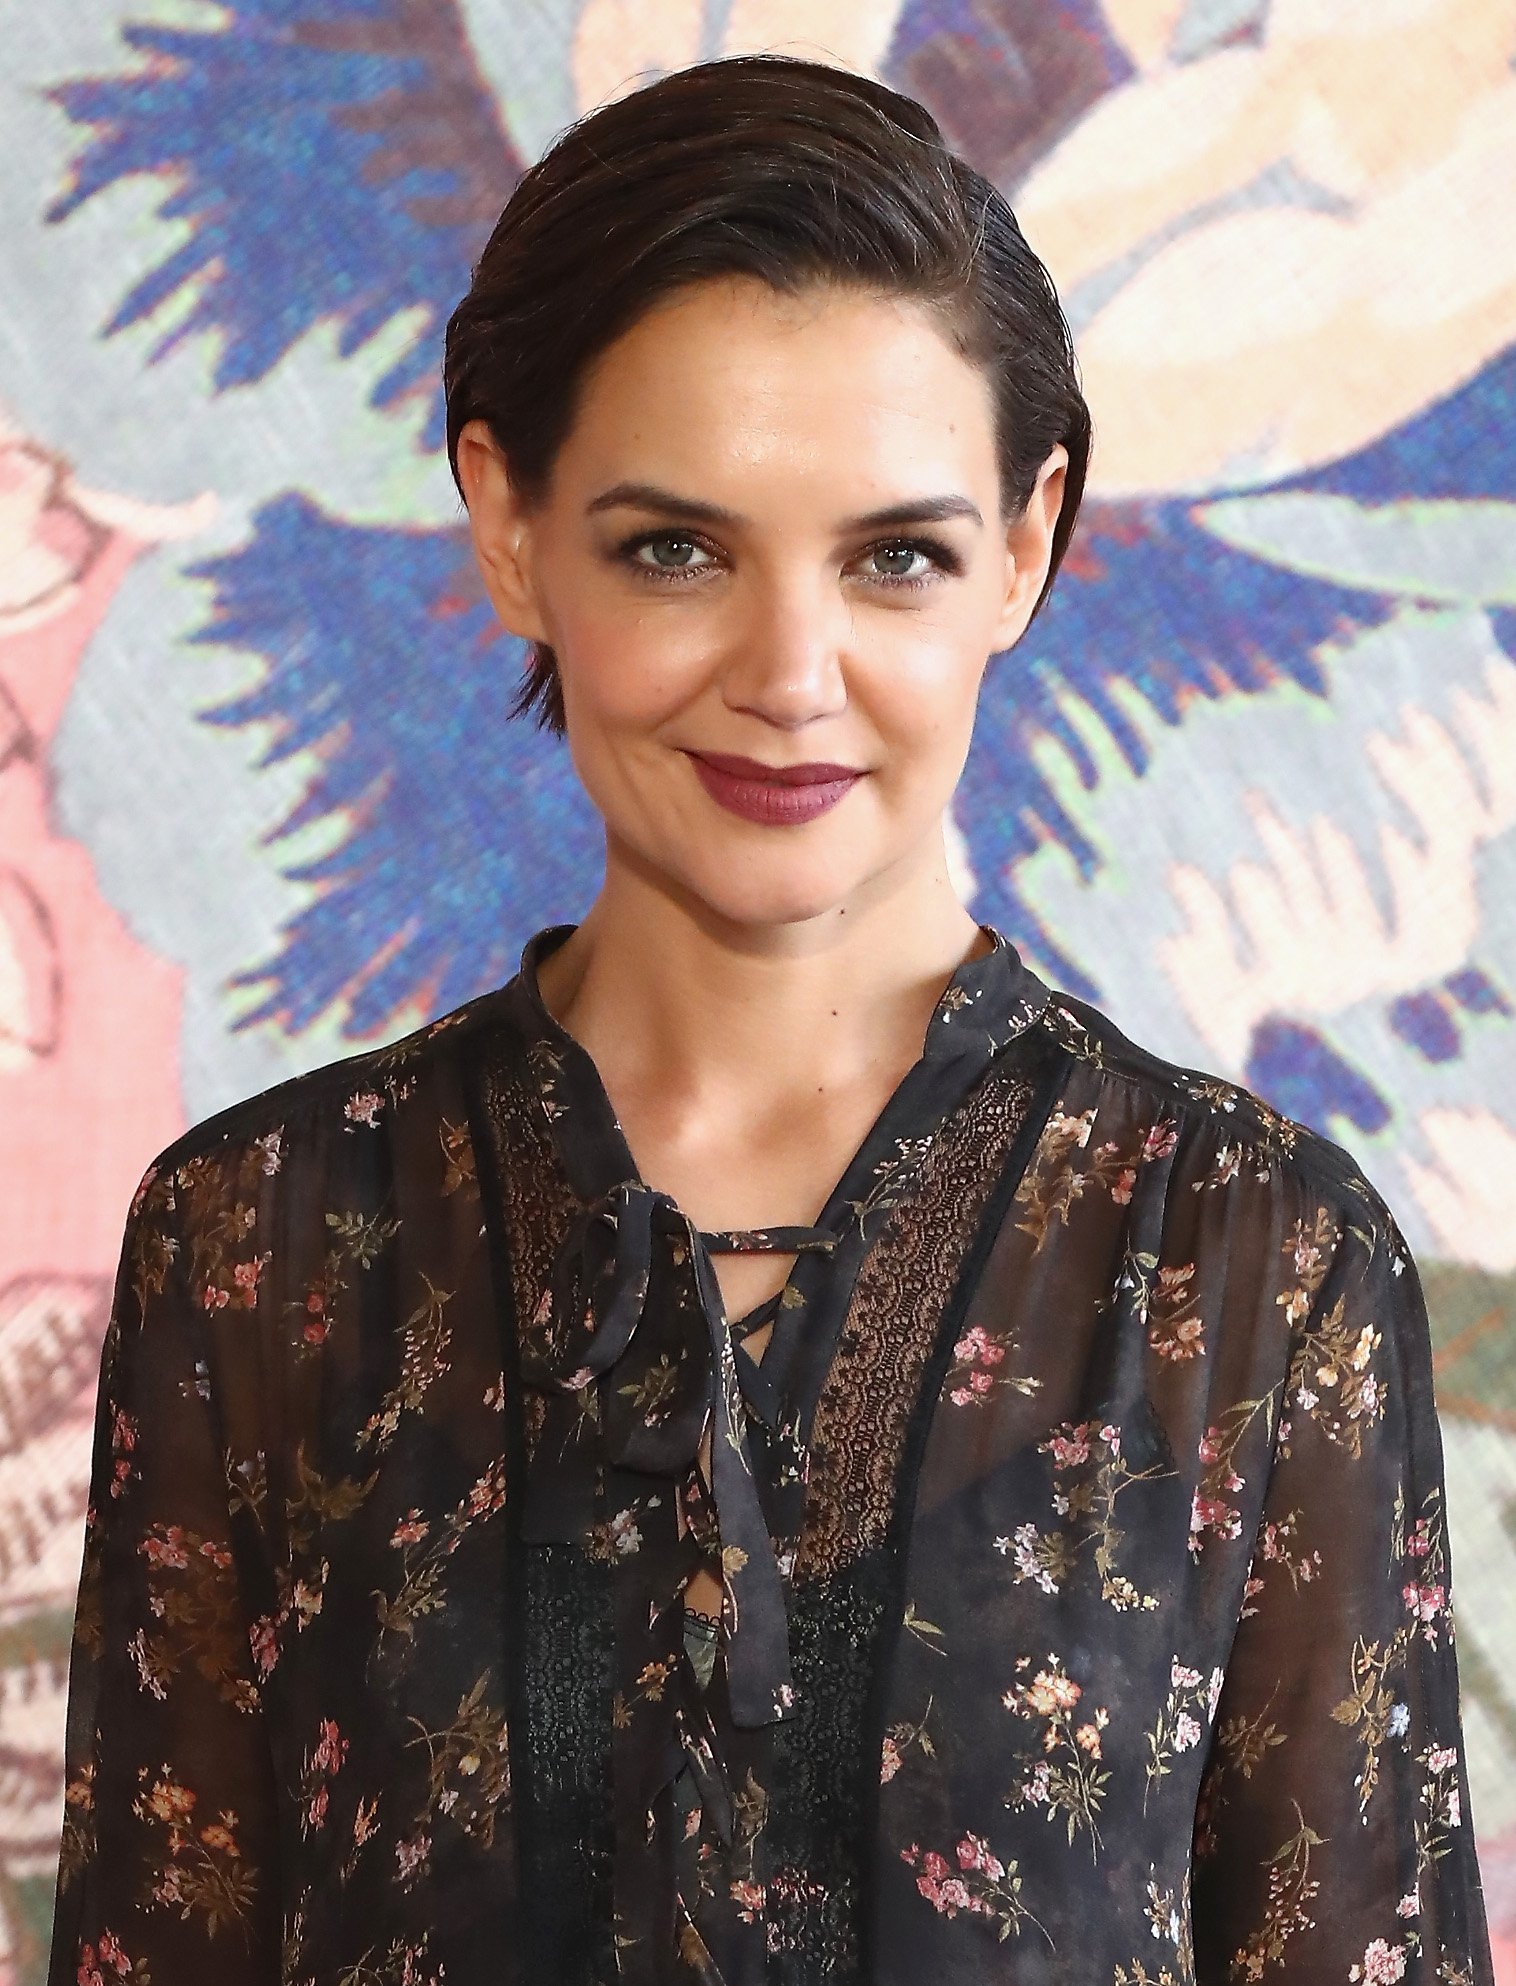 Katie Holmes attends the Zimmermann fashion show during New York Fashion Week on February 12, 2018, in New York City. | Source: Getty Images.